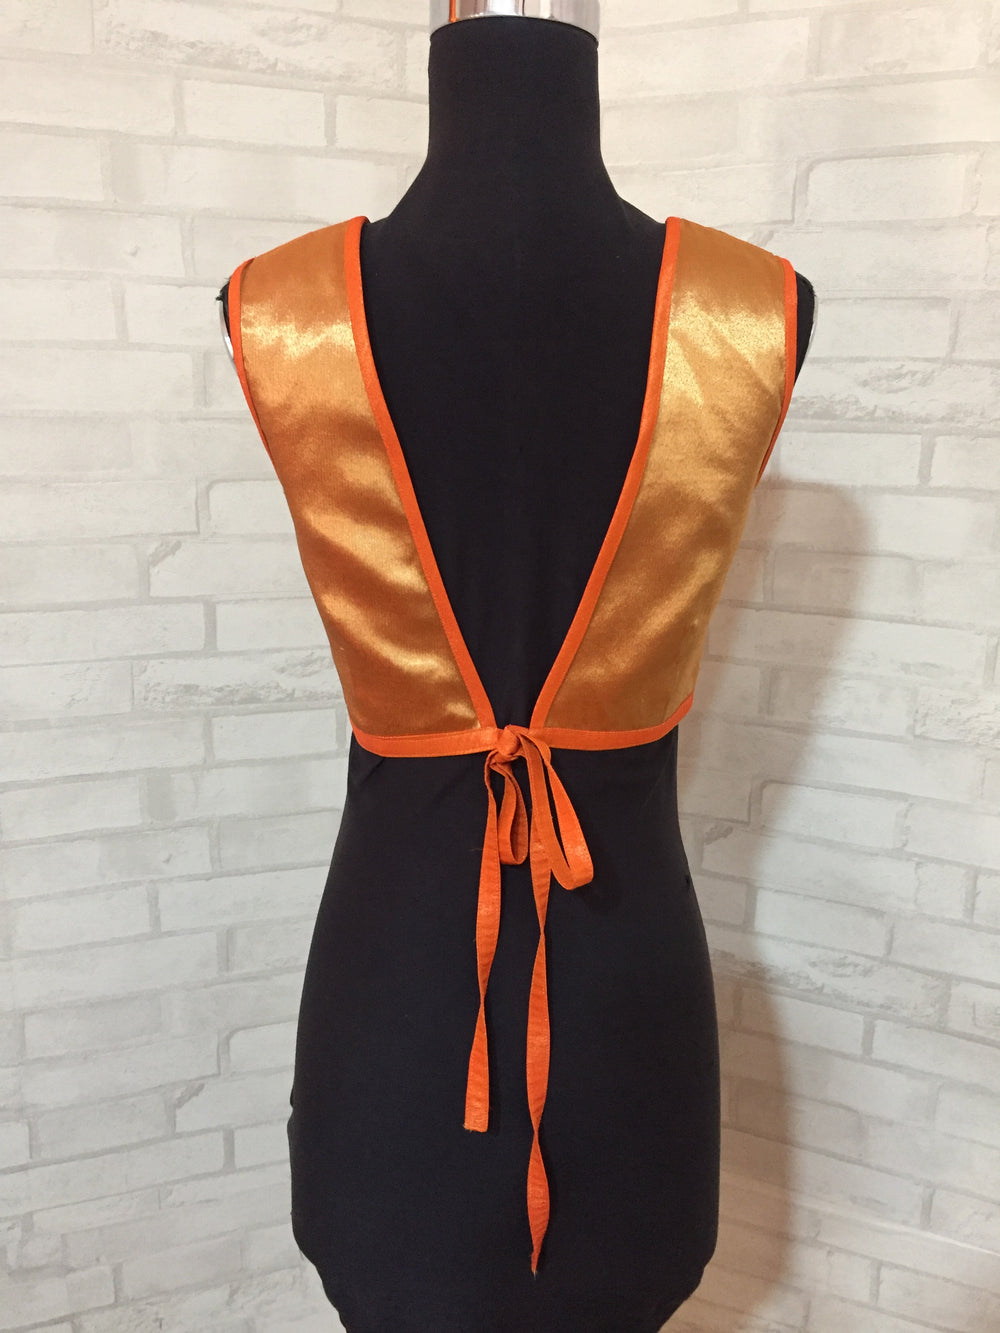 Orange tissue sleeveless blouse with embellished yoke and tie back - House of Blouse